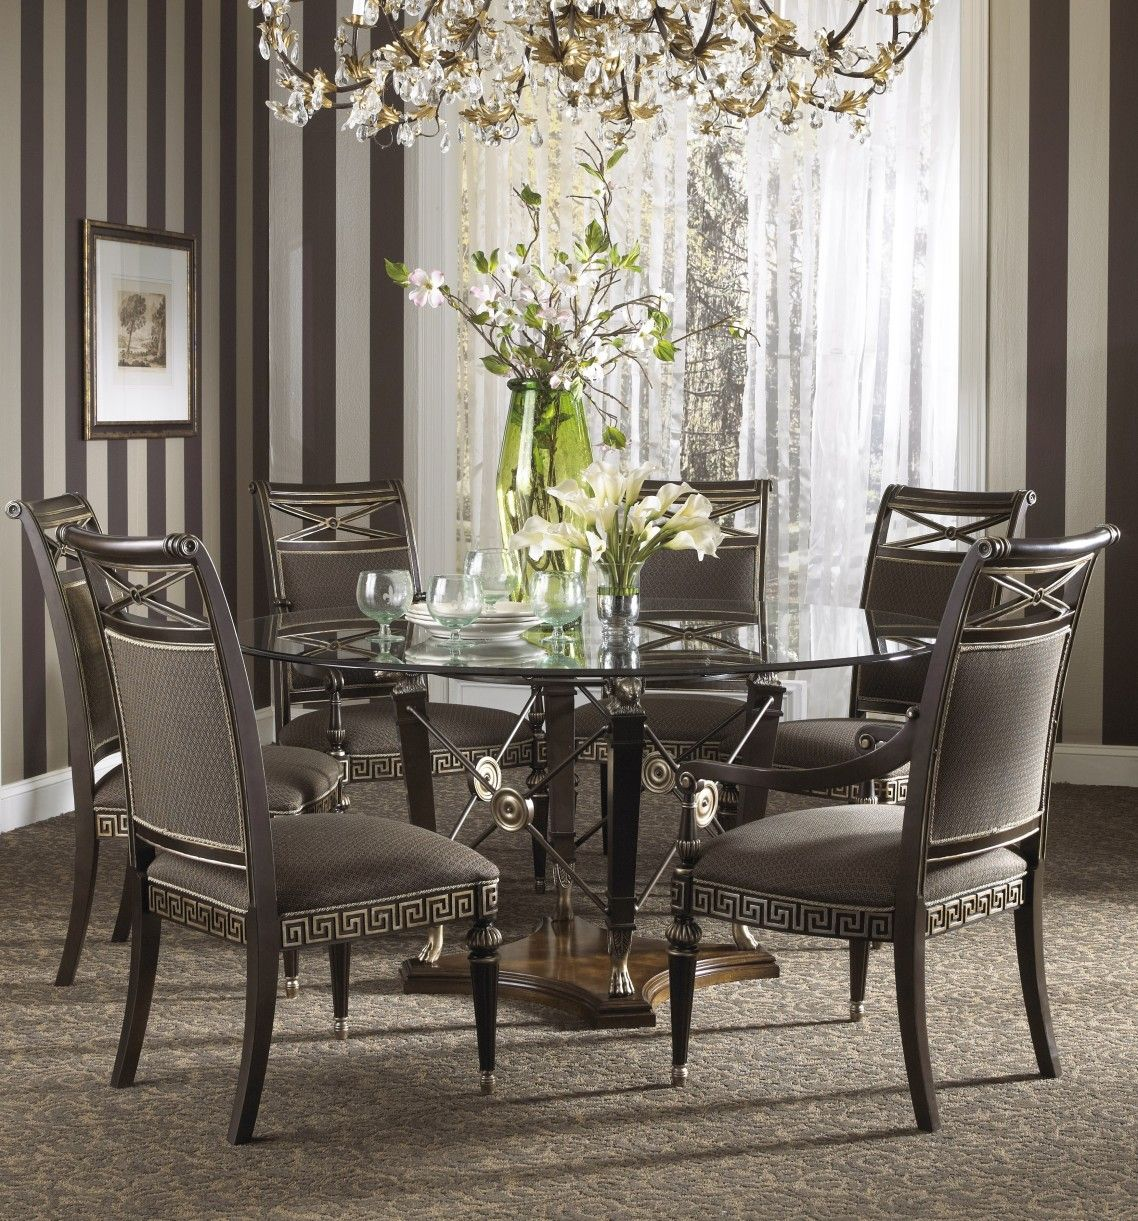 Room   Awesome Luxury Gray Wrought Iron Dining Table. Awesome Luxury Gray Wrought Iron Dining Table Base Mixed Round